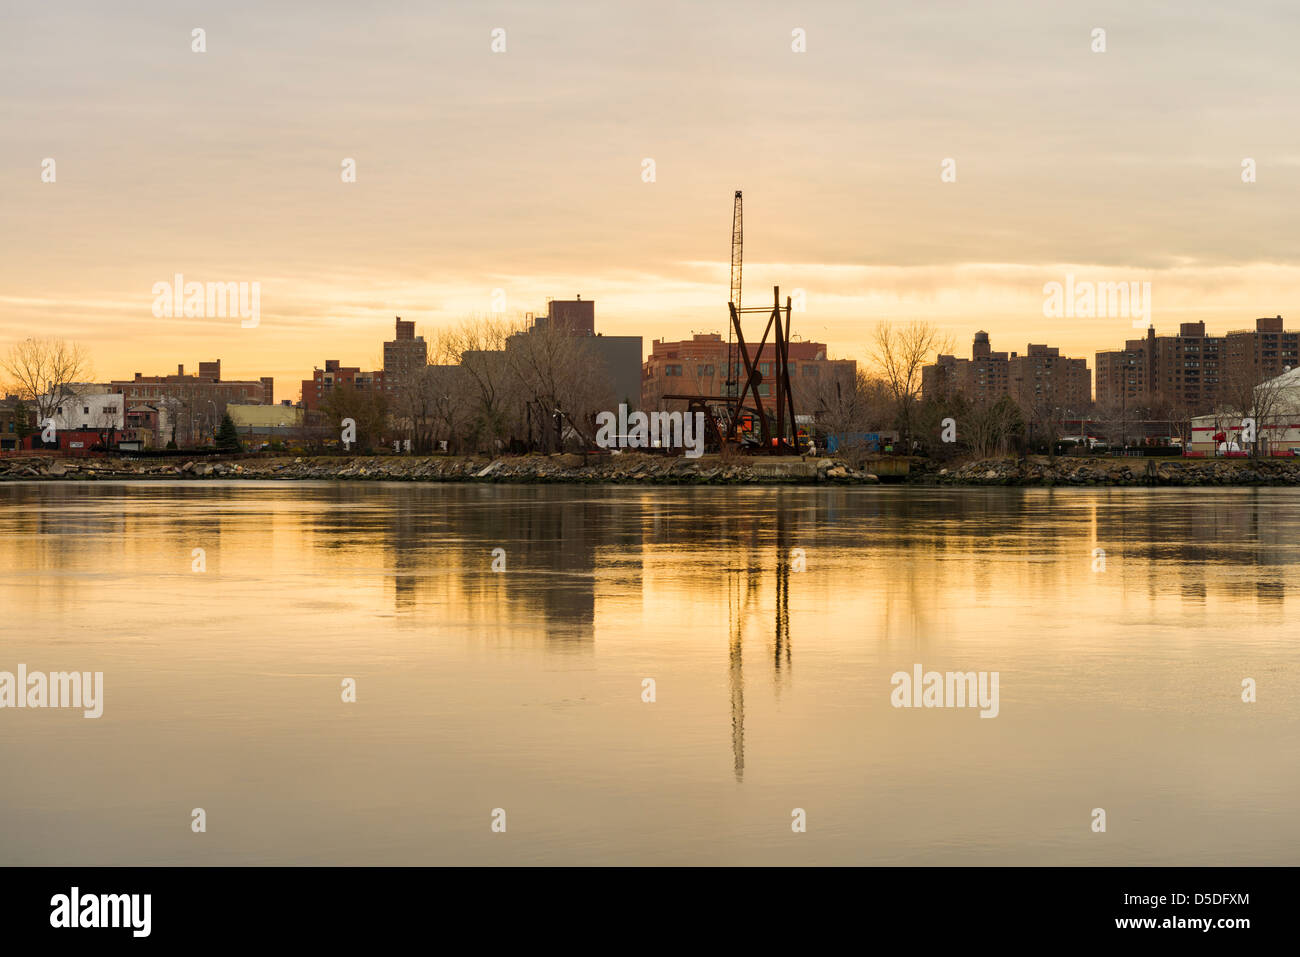 Morning view of Long Island City, New York, seen from Roosevelt Island. - Stock Image